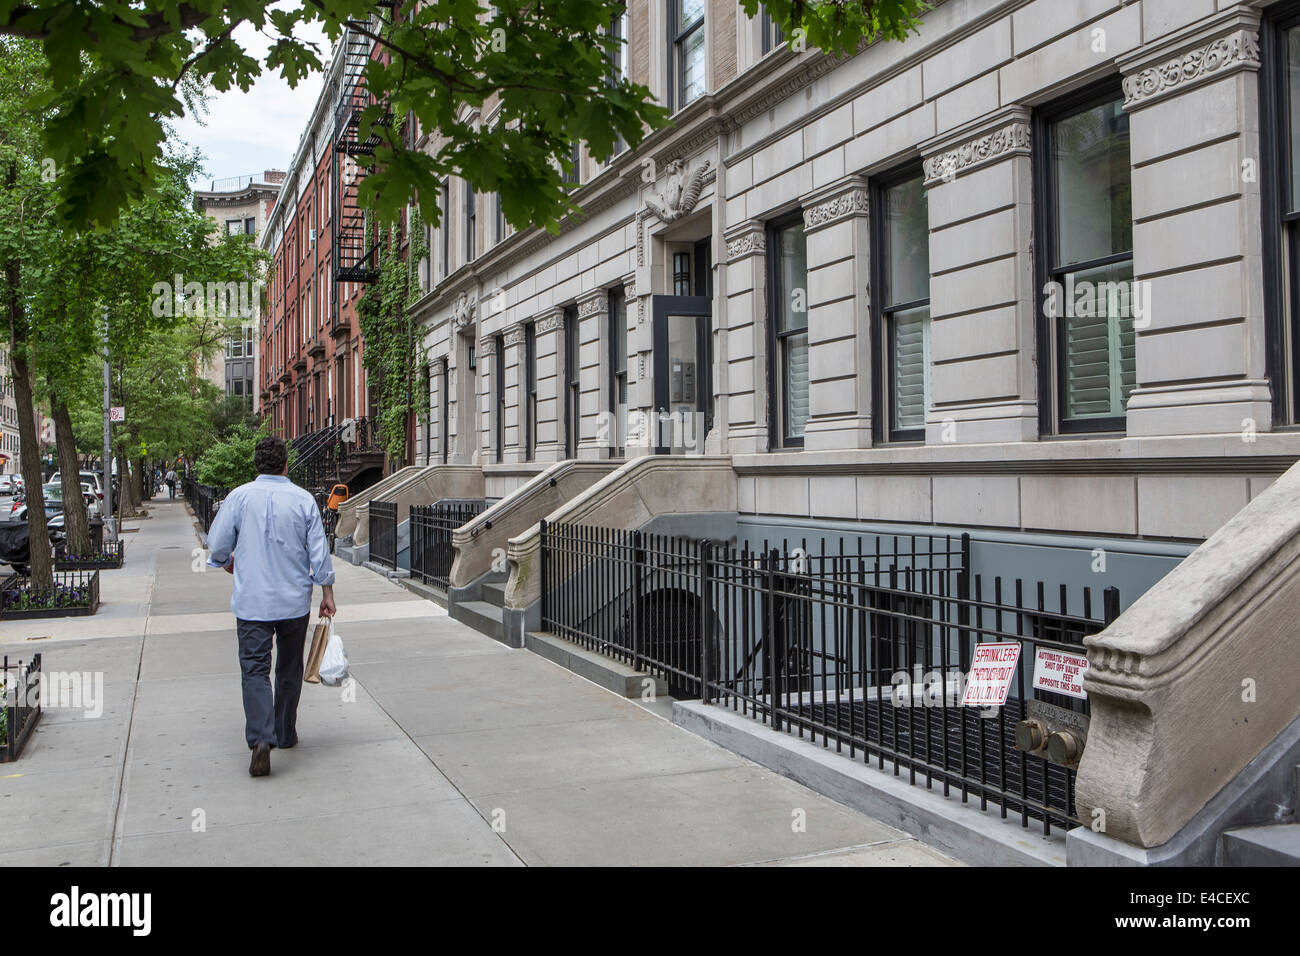 townhouses new york stock photos townhouses new york stock images alamy. Black Bedroom Furniture Sets. Home Design Ideas